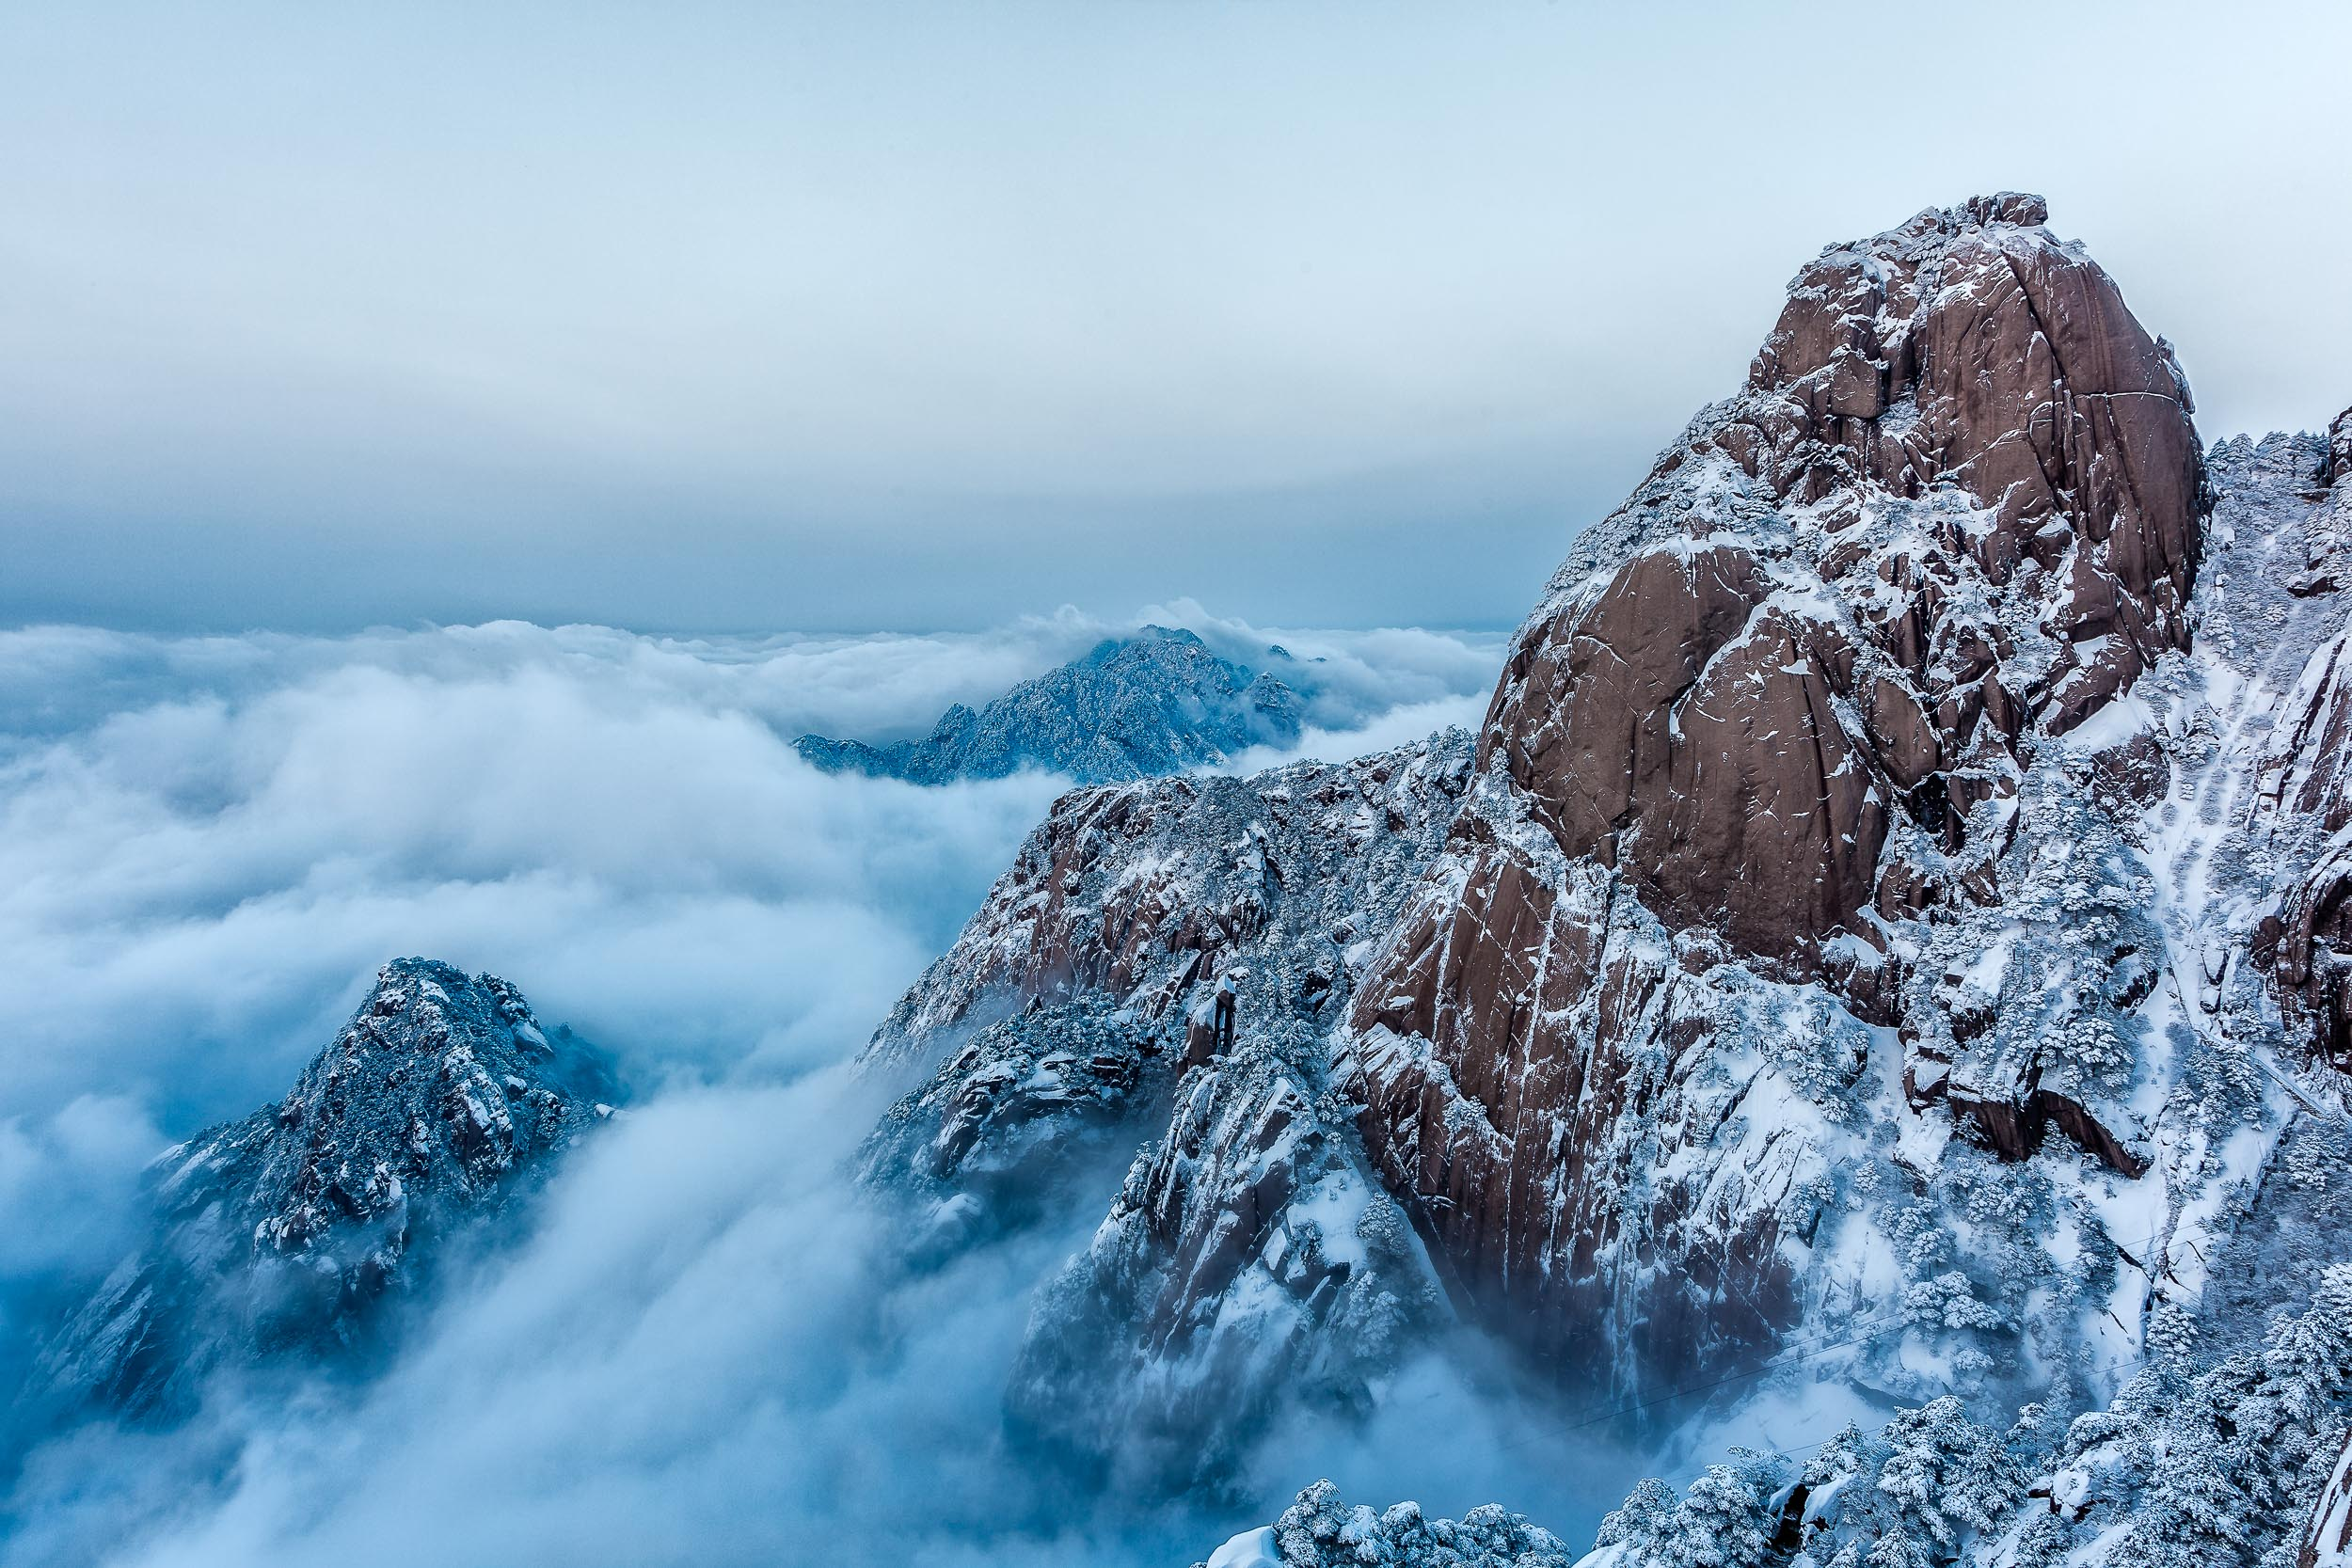 A    sublime view   , early in the morning,    above the clouds    on    Huangshan    (i.e., Yellow Mountain),    China   .